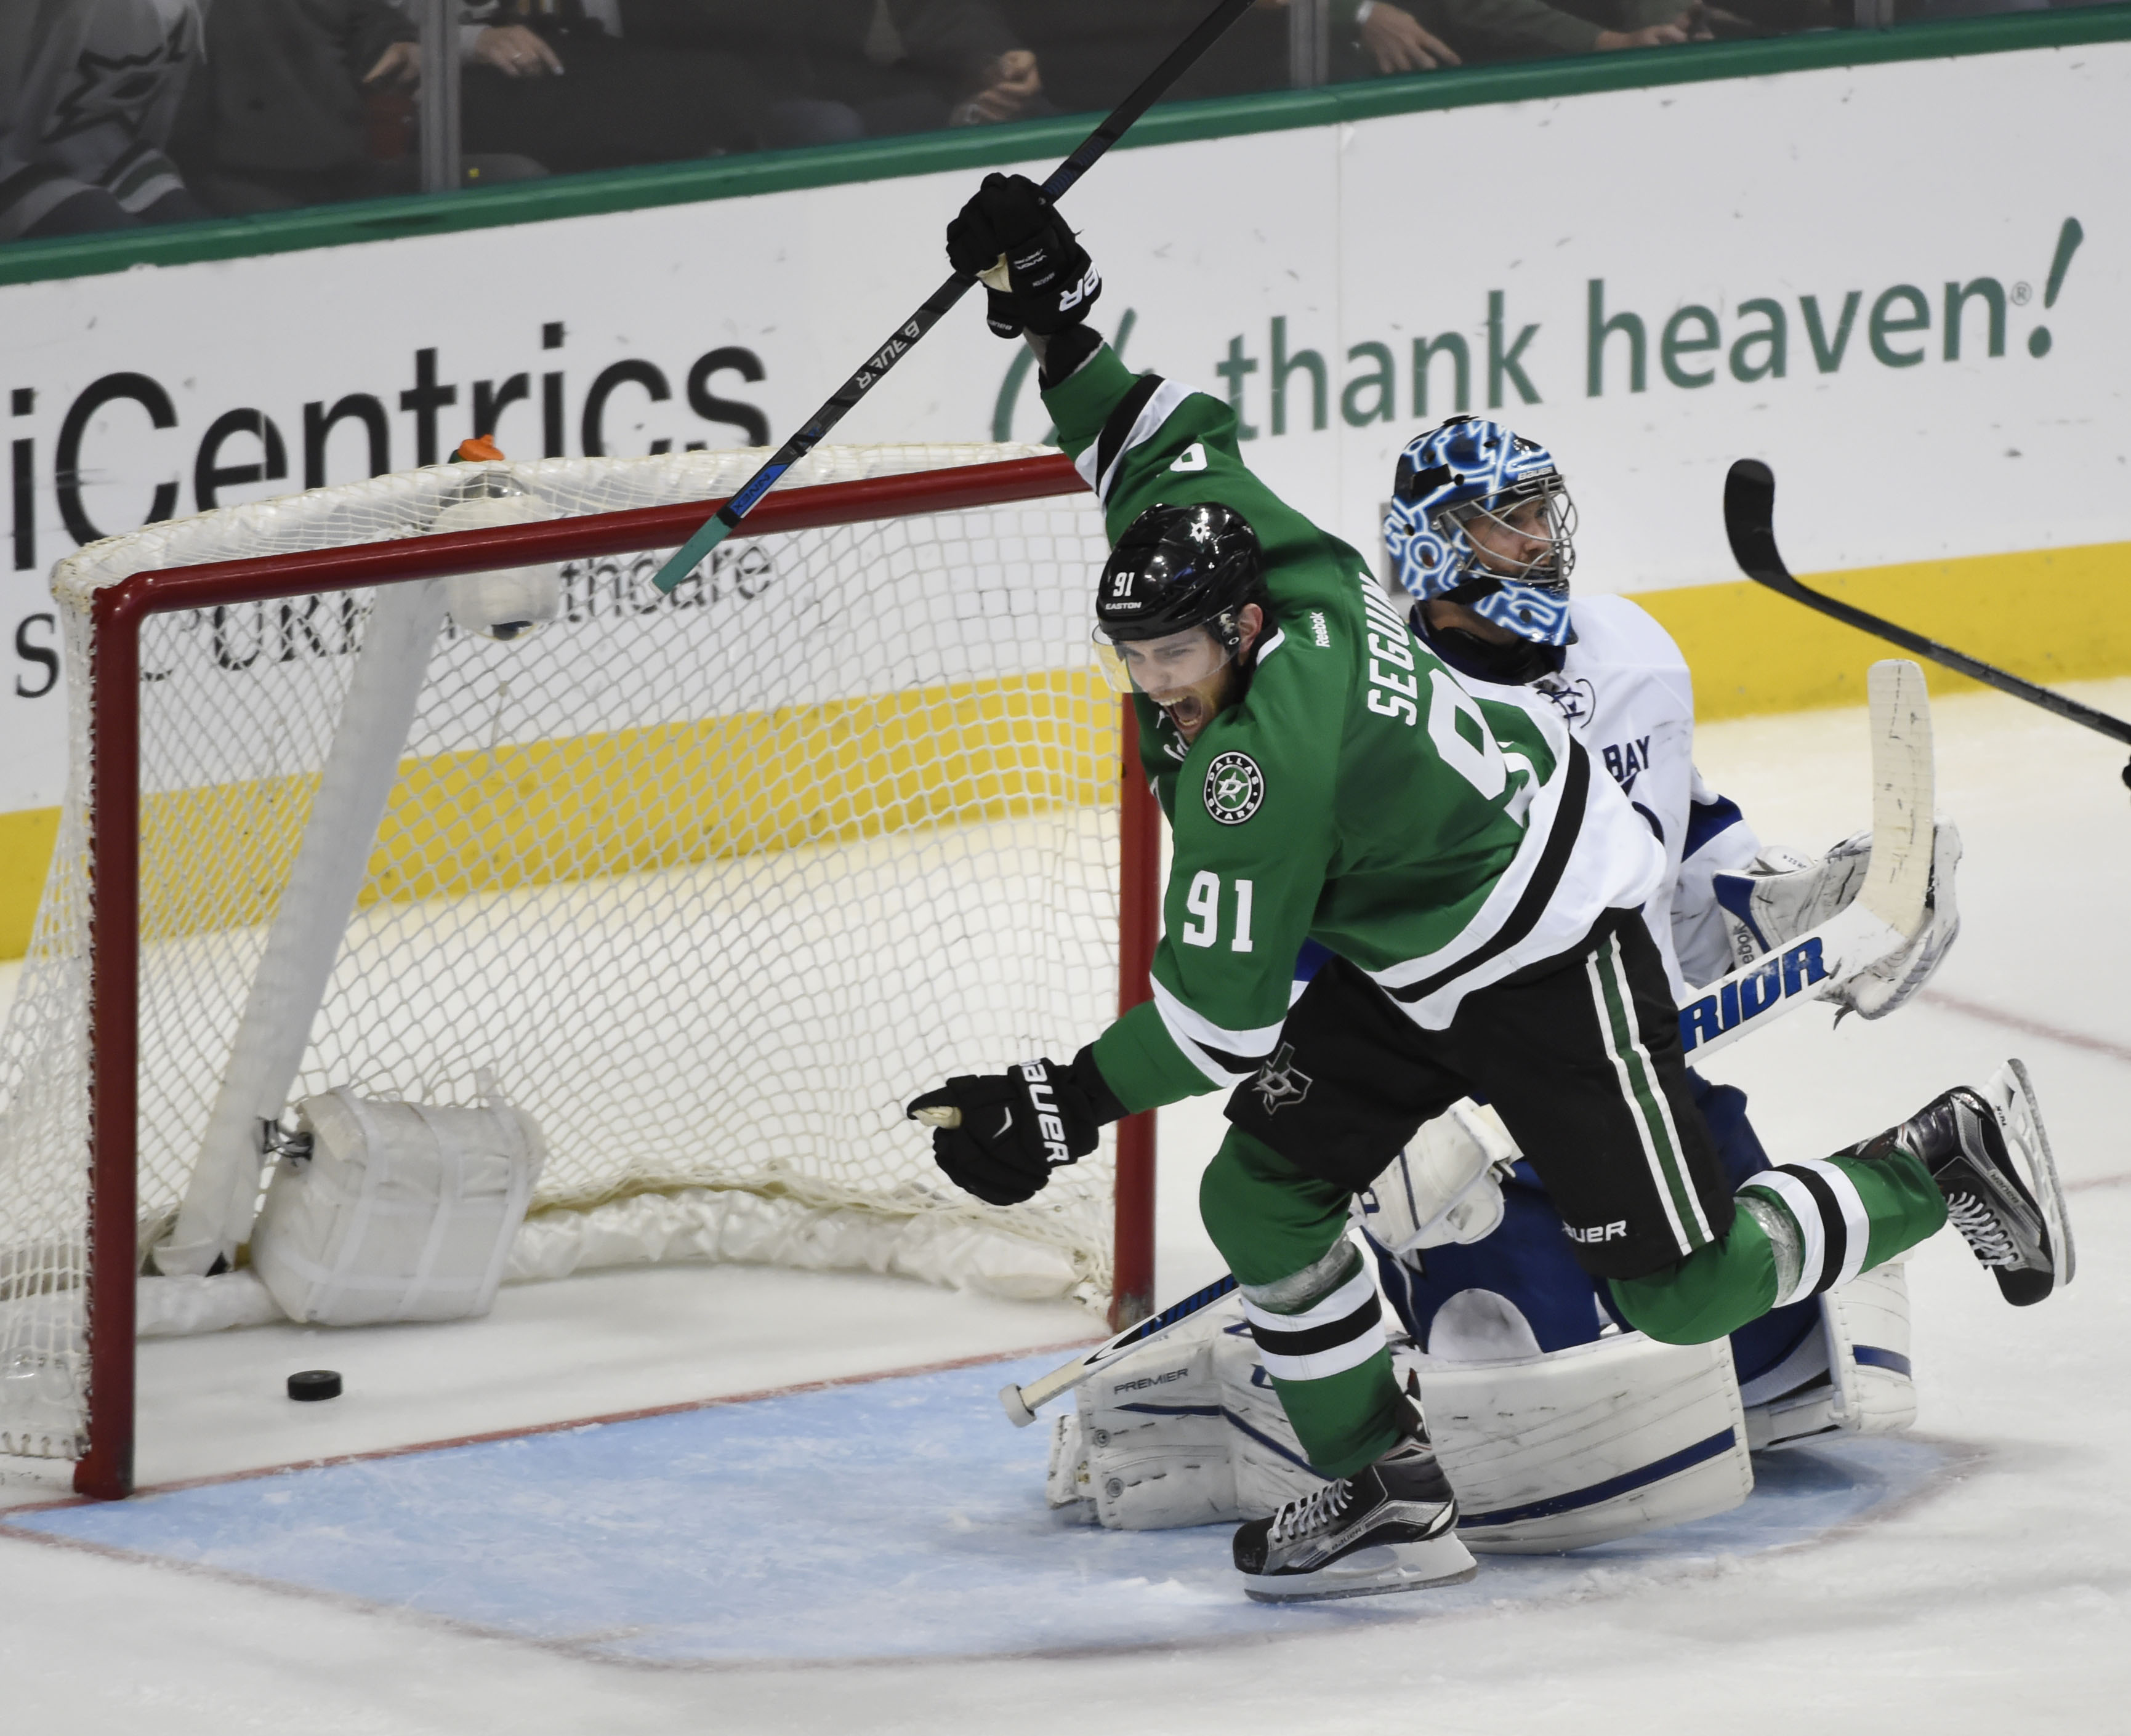 Dallas Stars center Tyler Seguin (91) celebrates a goal by teammate Stephen Johns (28), not pictured, on Tampa Bay Lightning goalie Ben Bishop (30) during the third period of their NHL hockey game in Dallas, on Thursday, March 17, 2016, in Dallas. Dallas